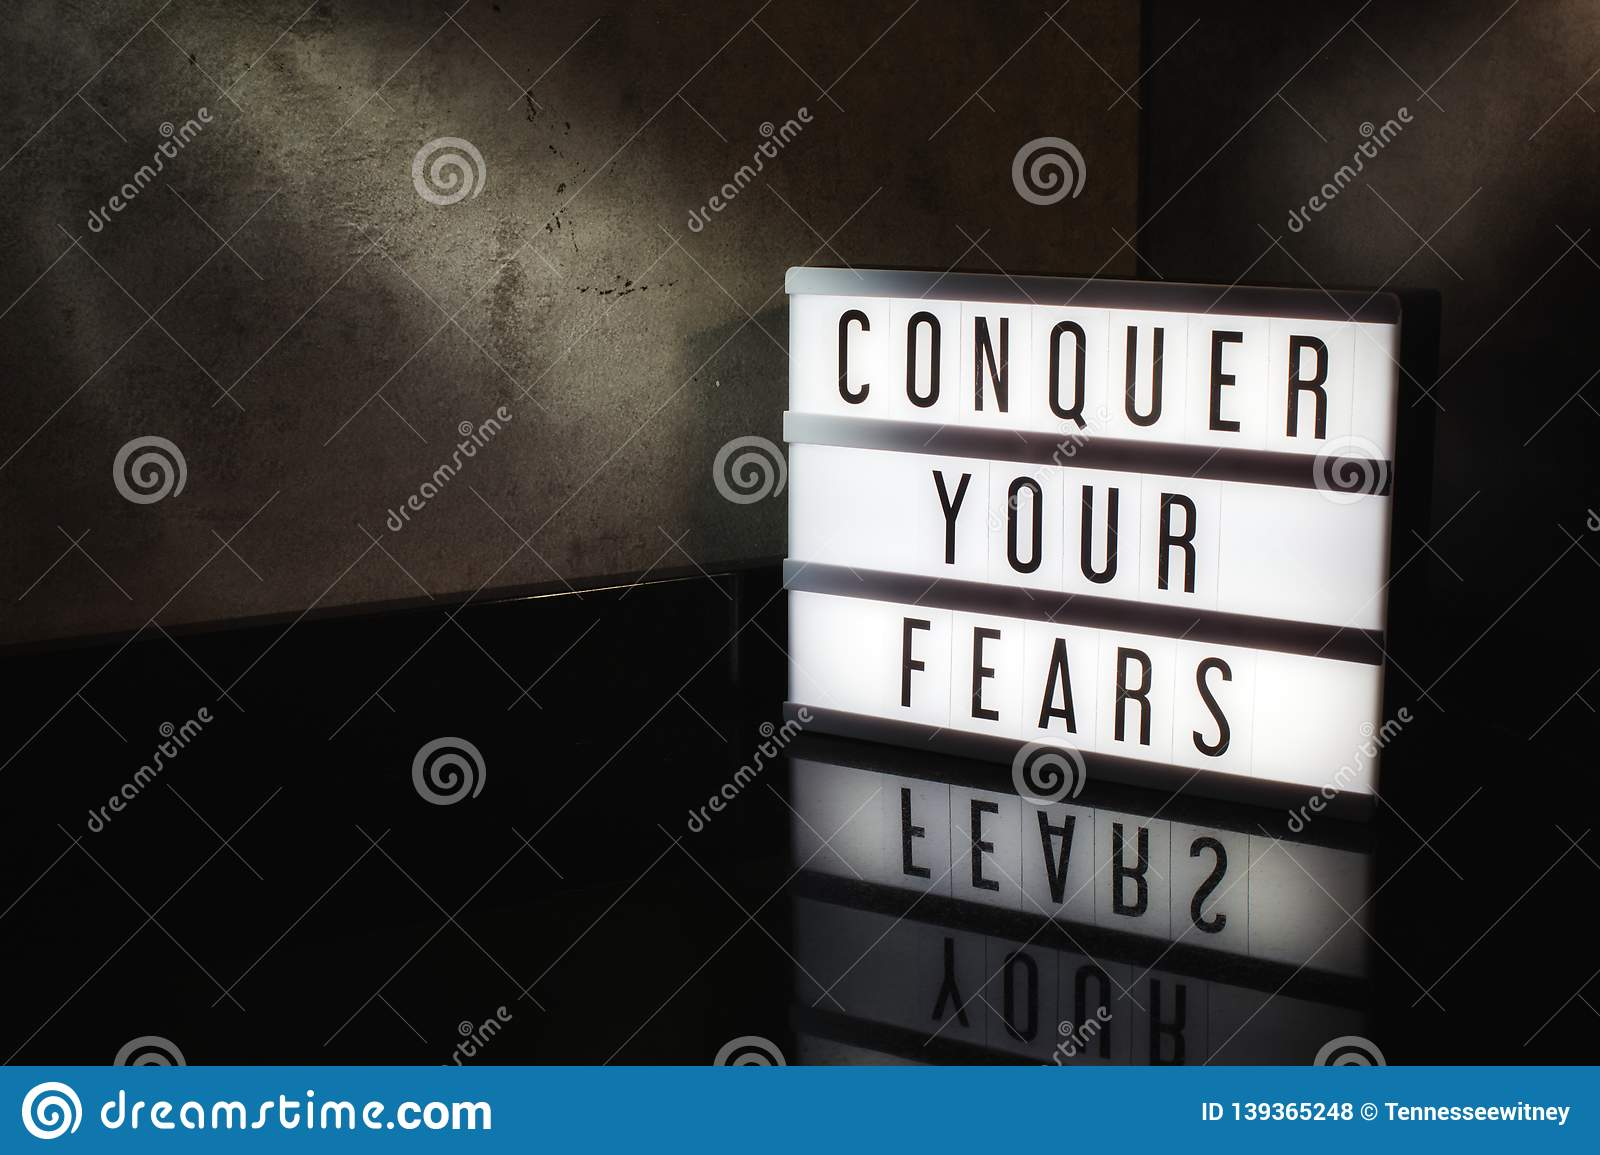 Conquer your fears motivational message